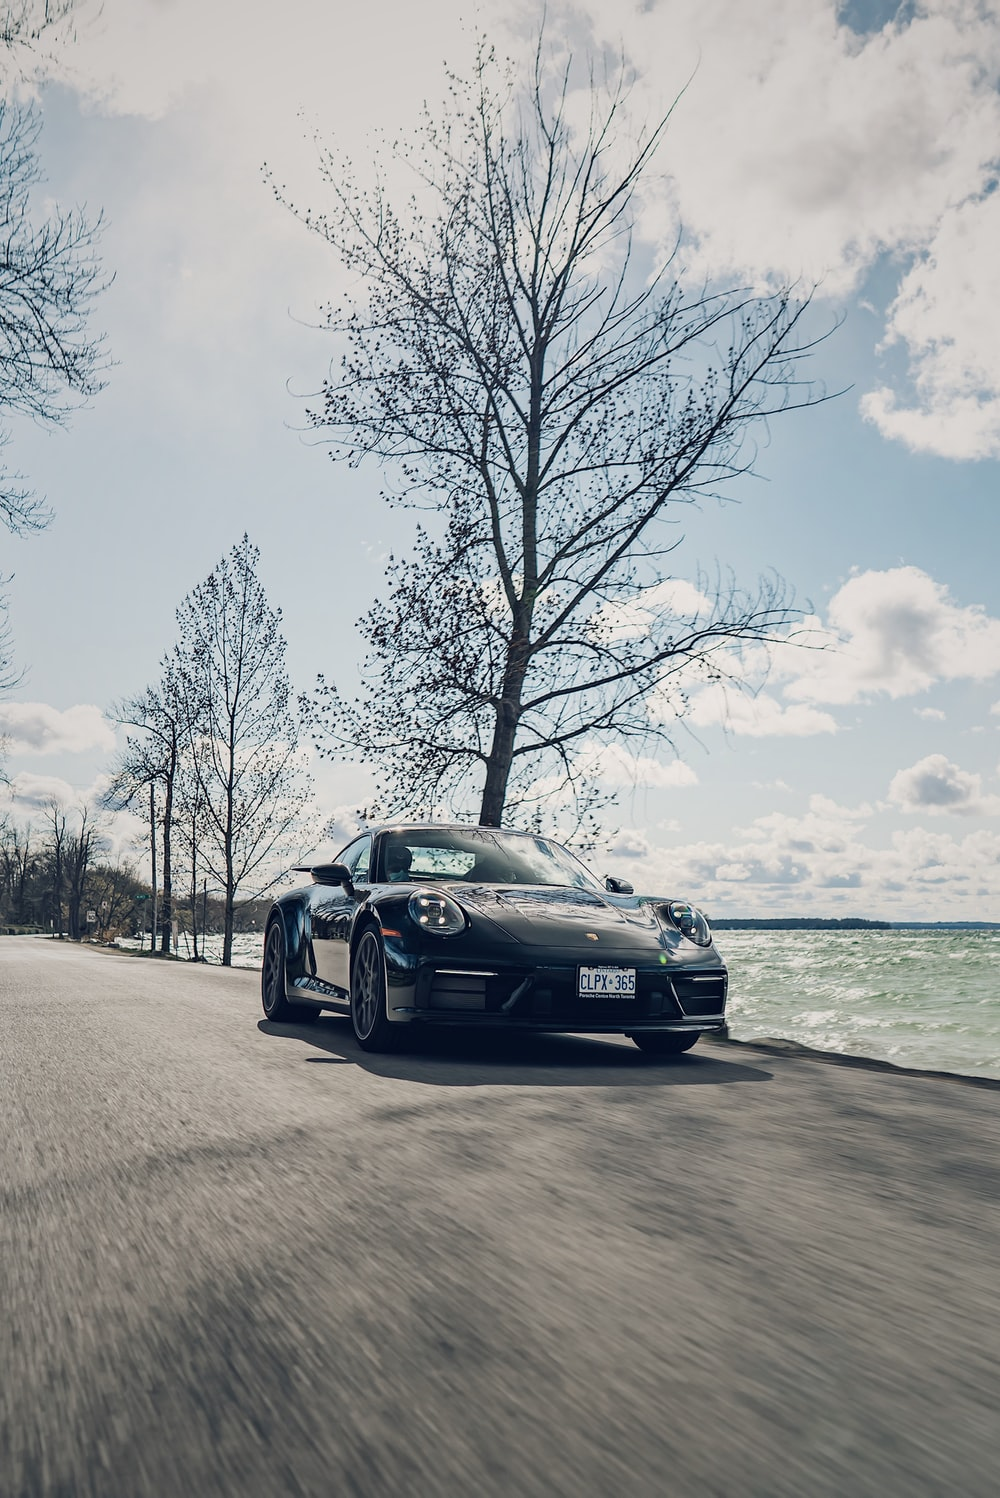 black porsche 911 on beach during daytime